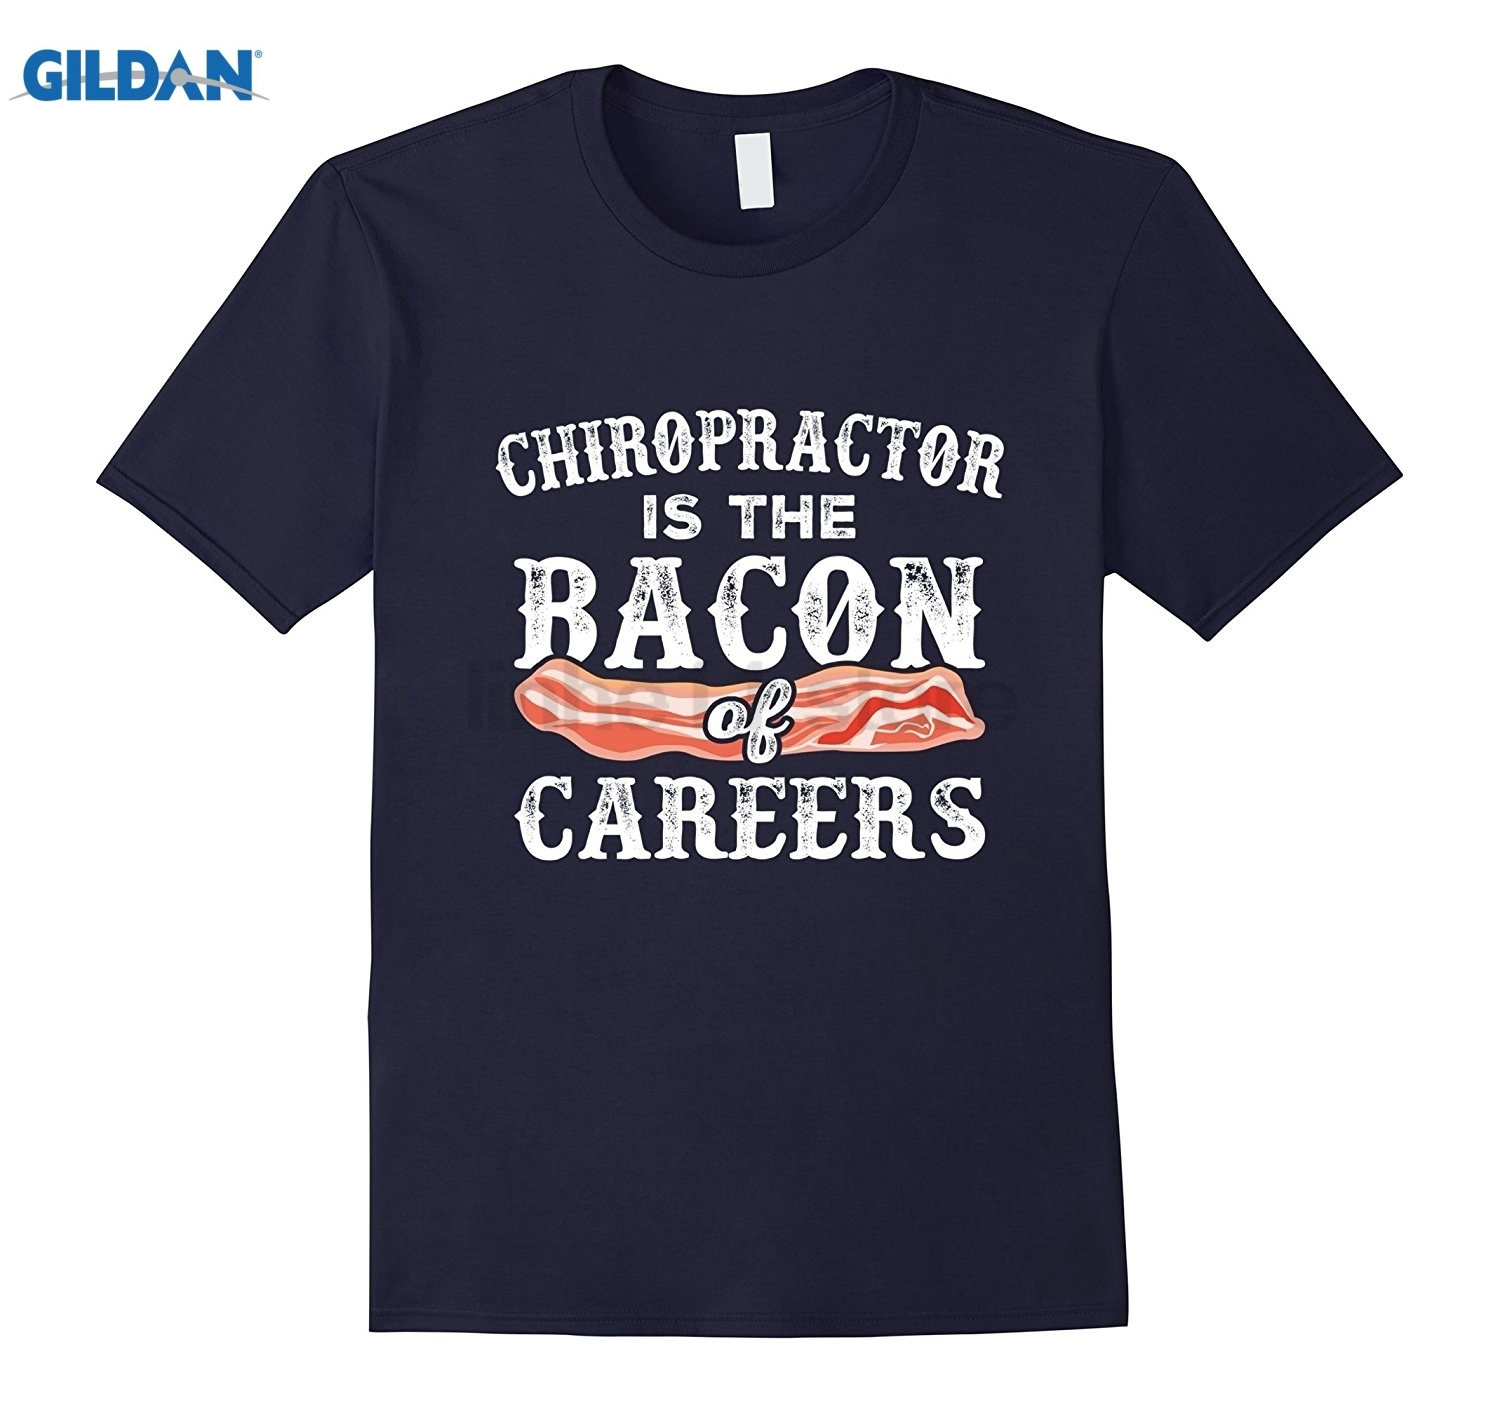 GILDAN Chiropractor Is The Bacon Of Careers Funny Spine Doc T-Shirt Womens T-shirt